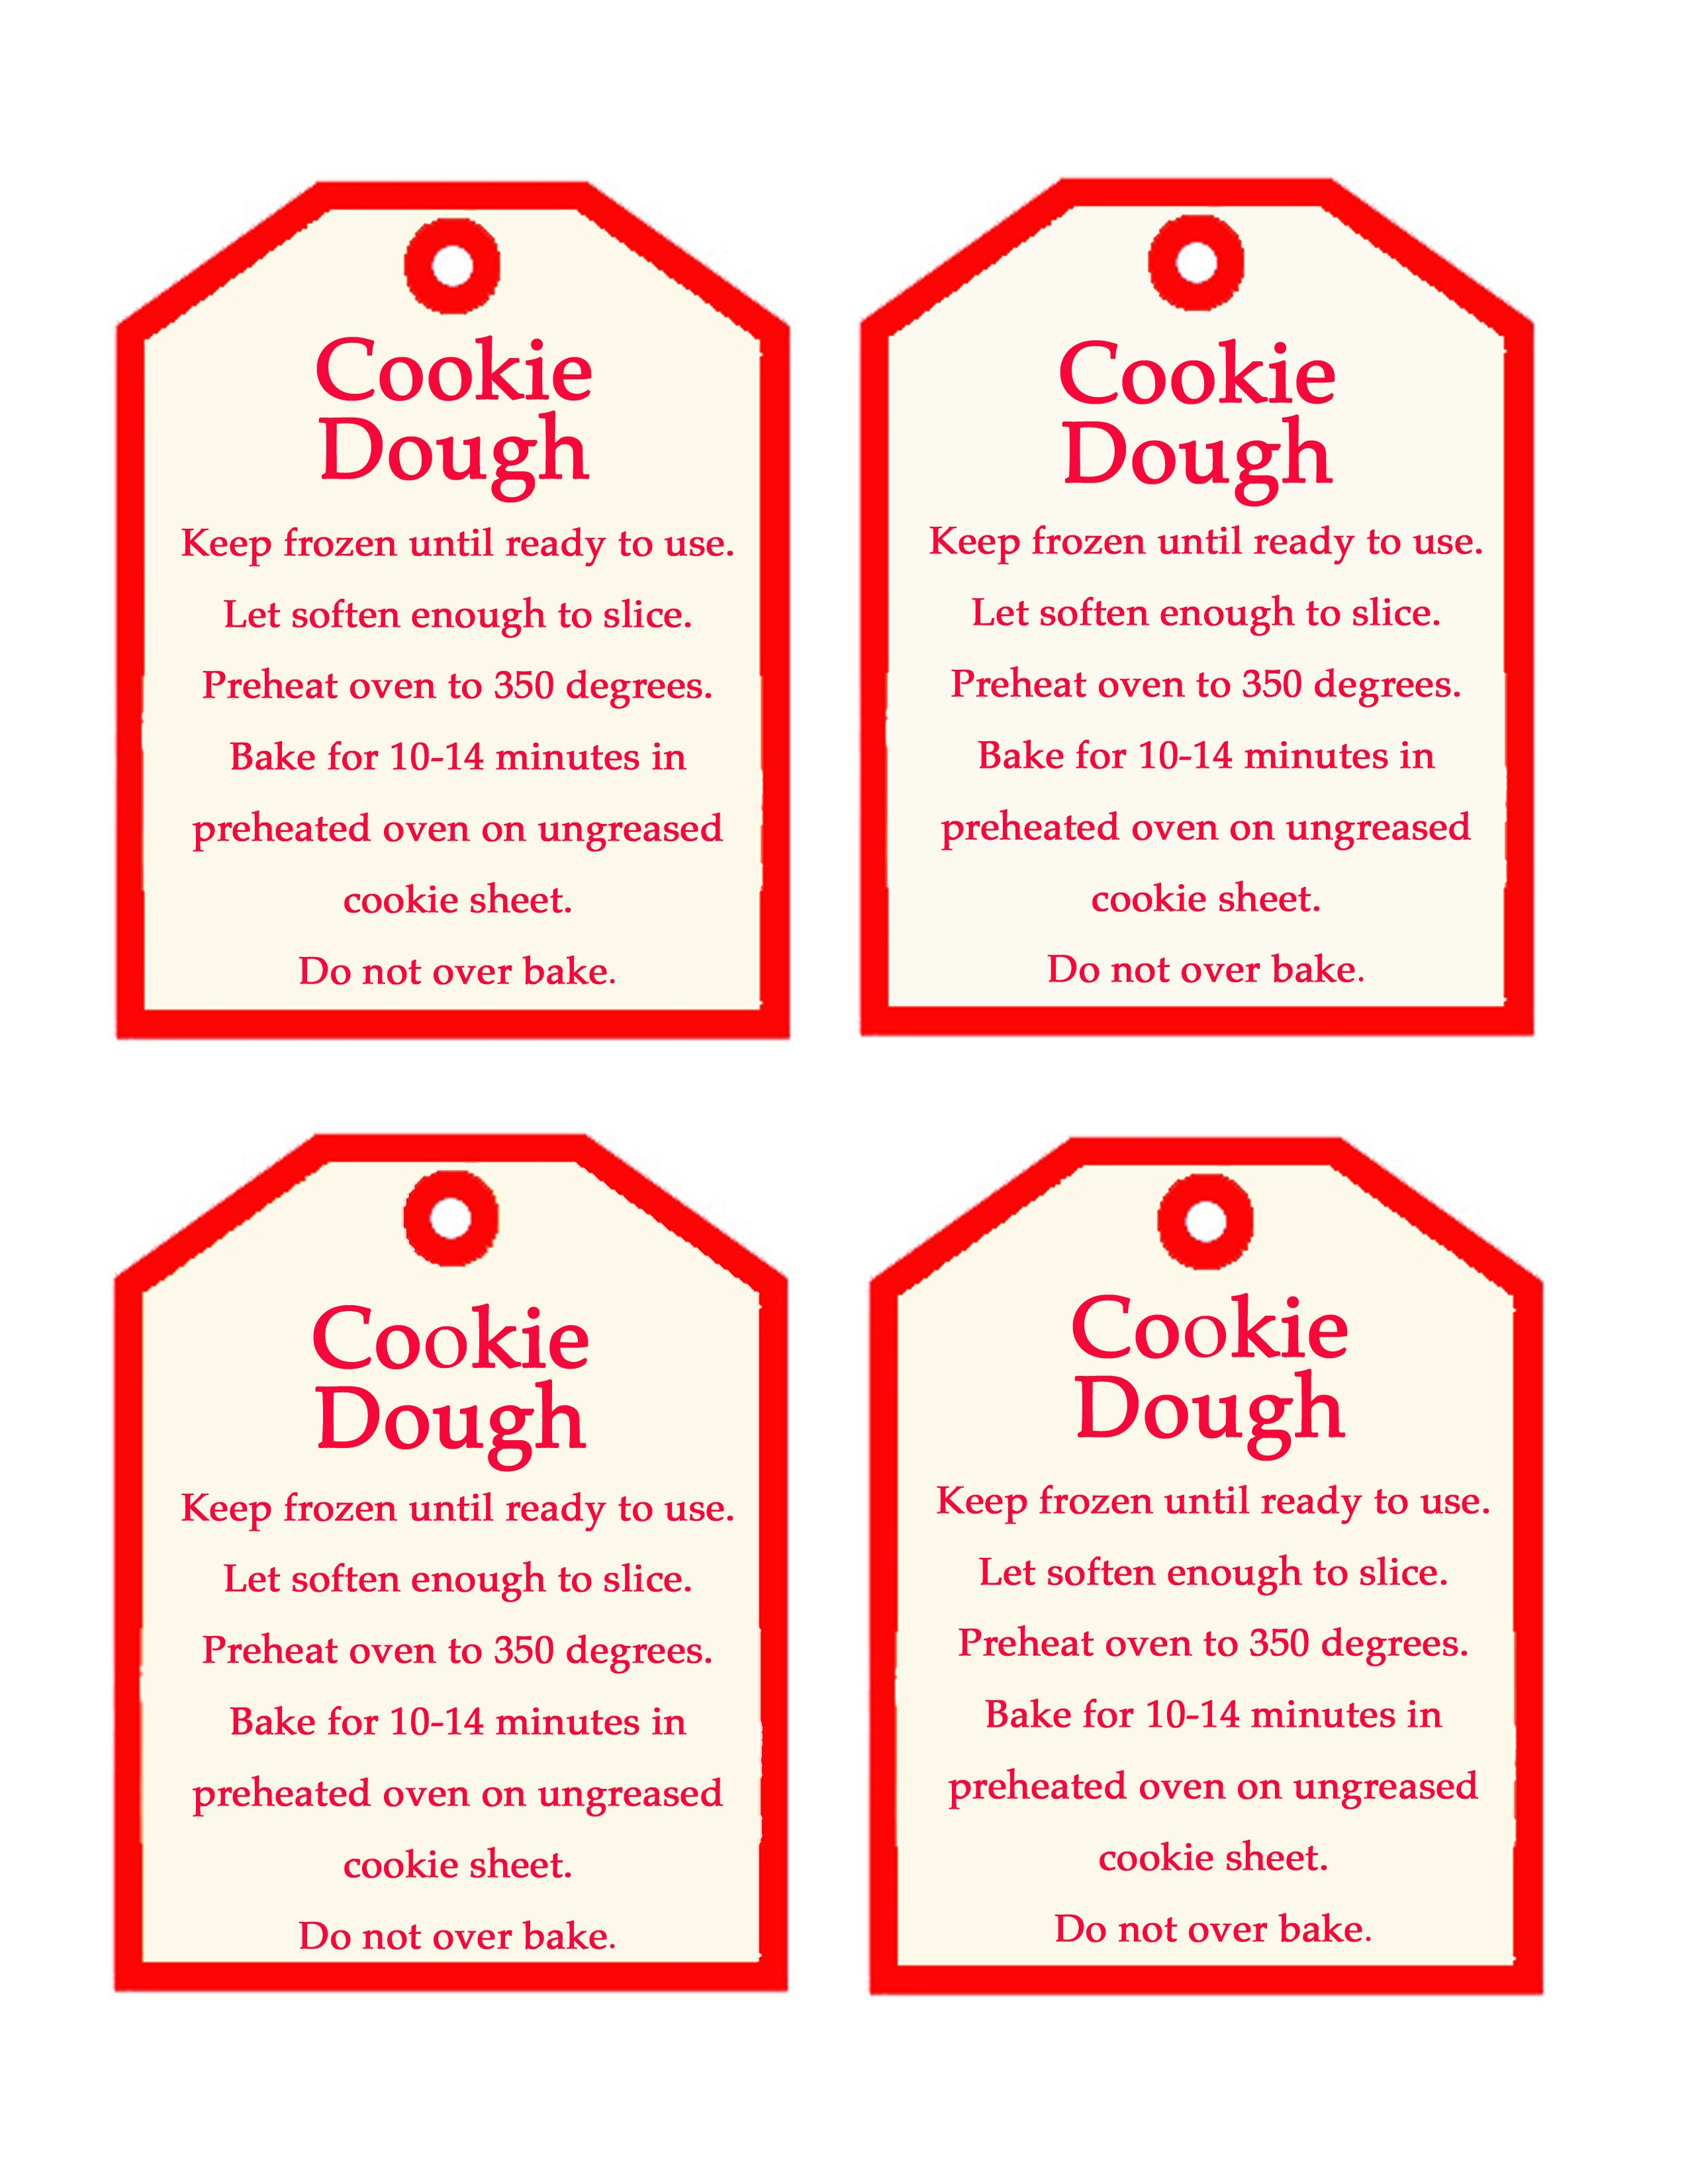 Make cookie dough to give as a Christmas gift. Free cookie dough printable @Design Dazzle #freeprintable, #cookiedoughprintable, #christmasneighborgift